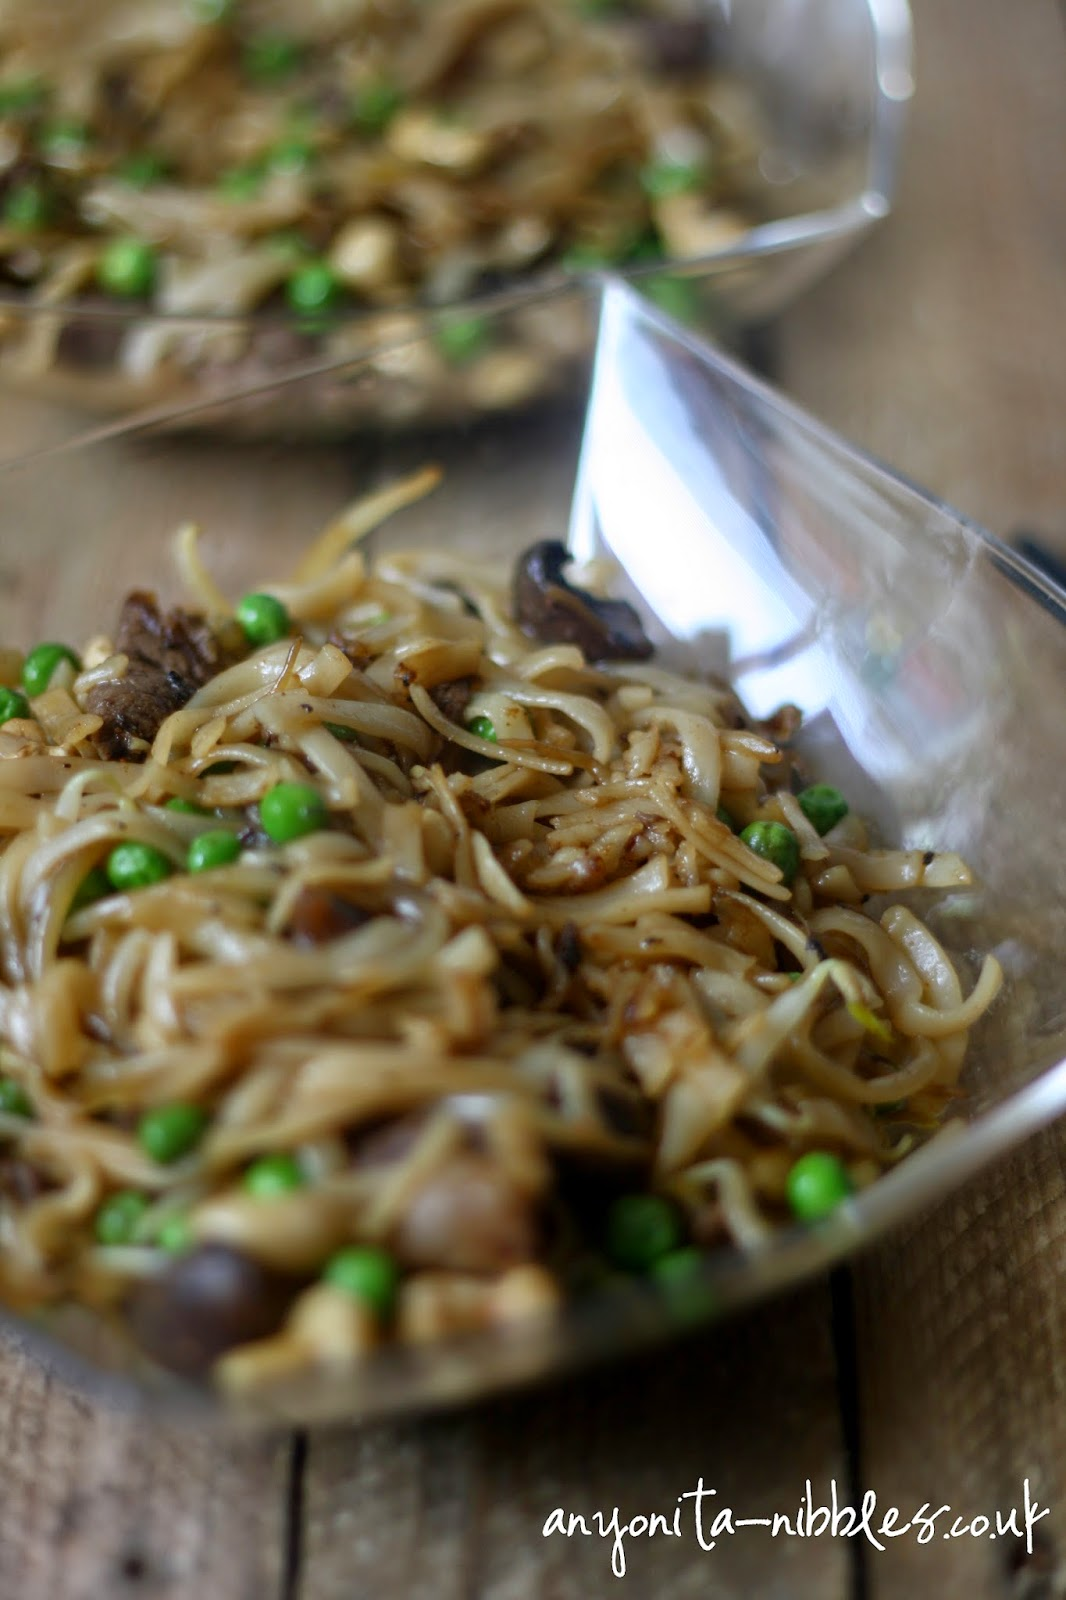 Beef with cashews, mushrooms and bean sprouts from Anyonita-nibbles.co.uk